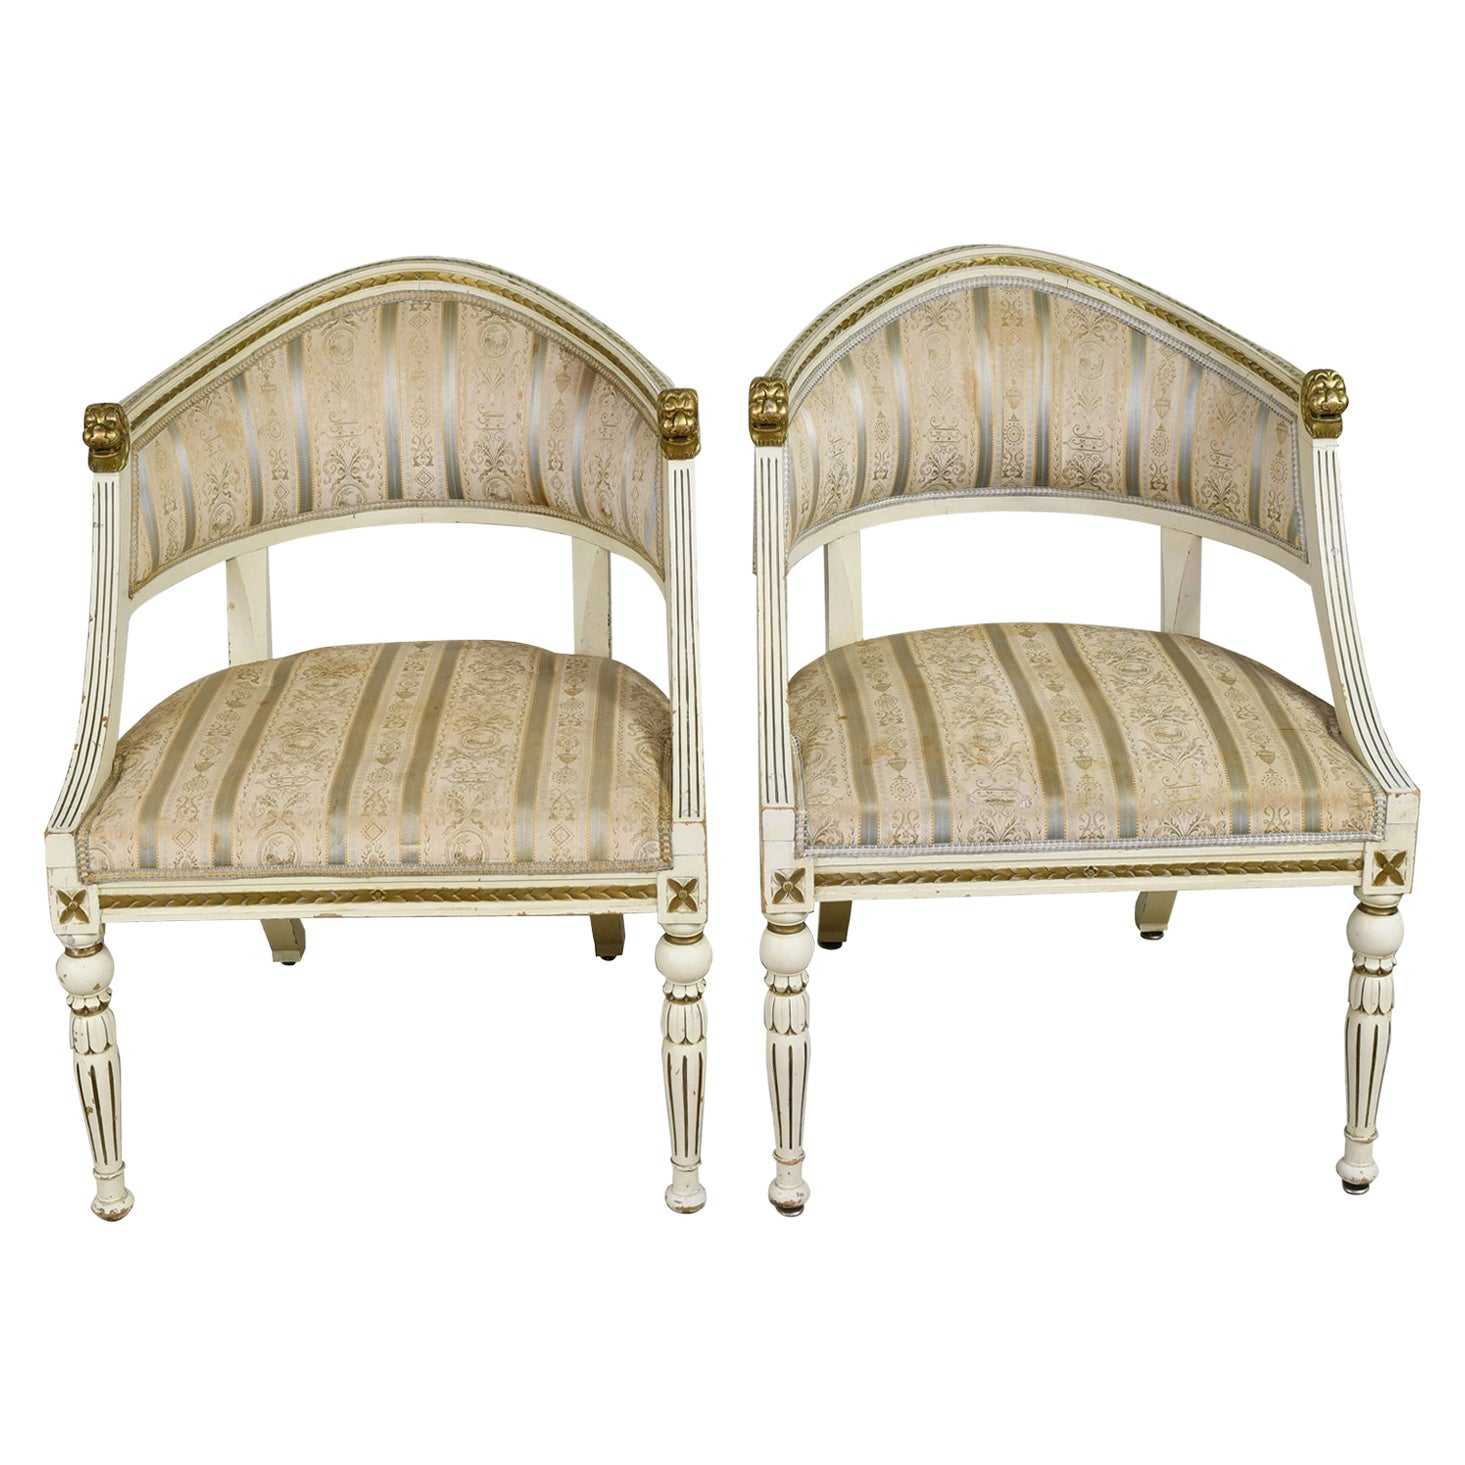 Pair of Painted Swedish Gustavian-Style Gondola Armchairs with Upholstery